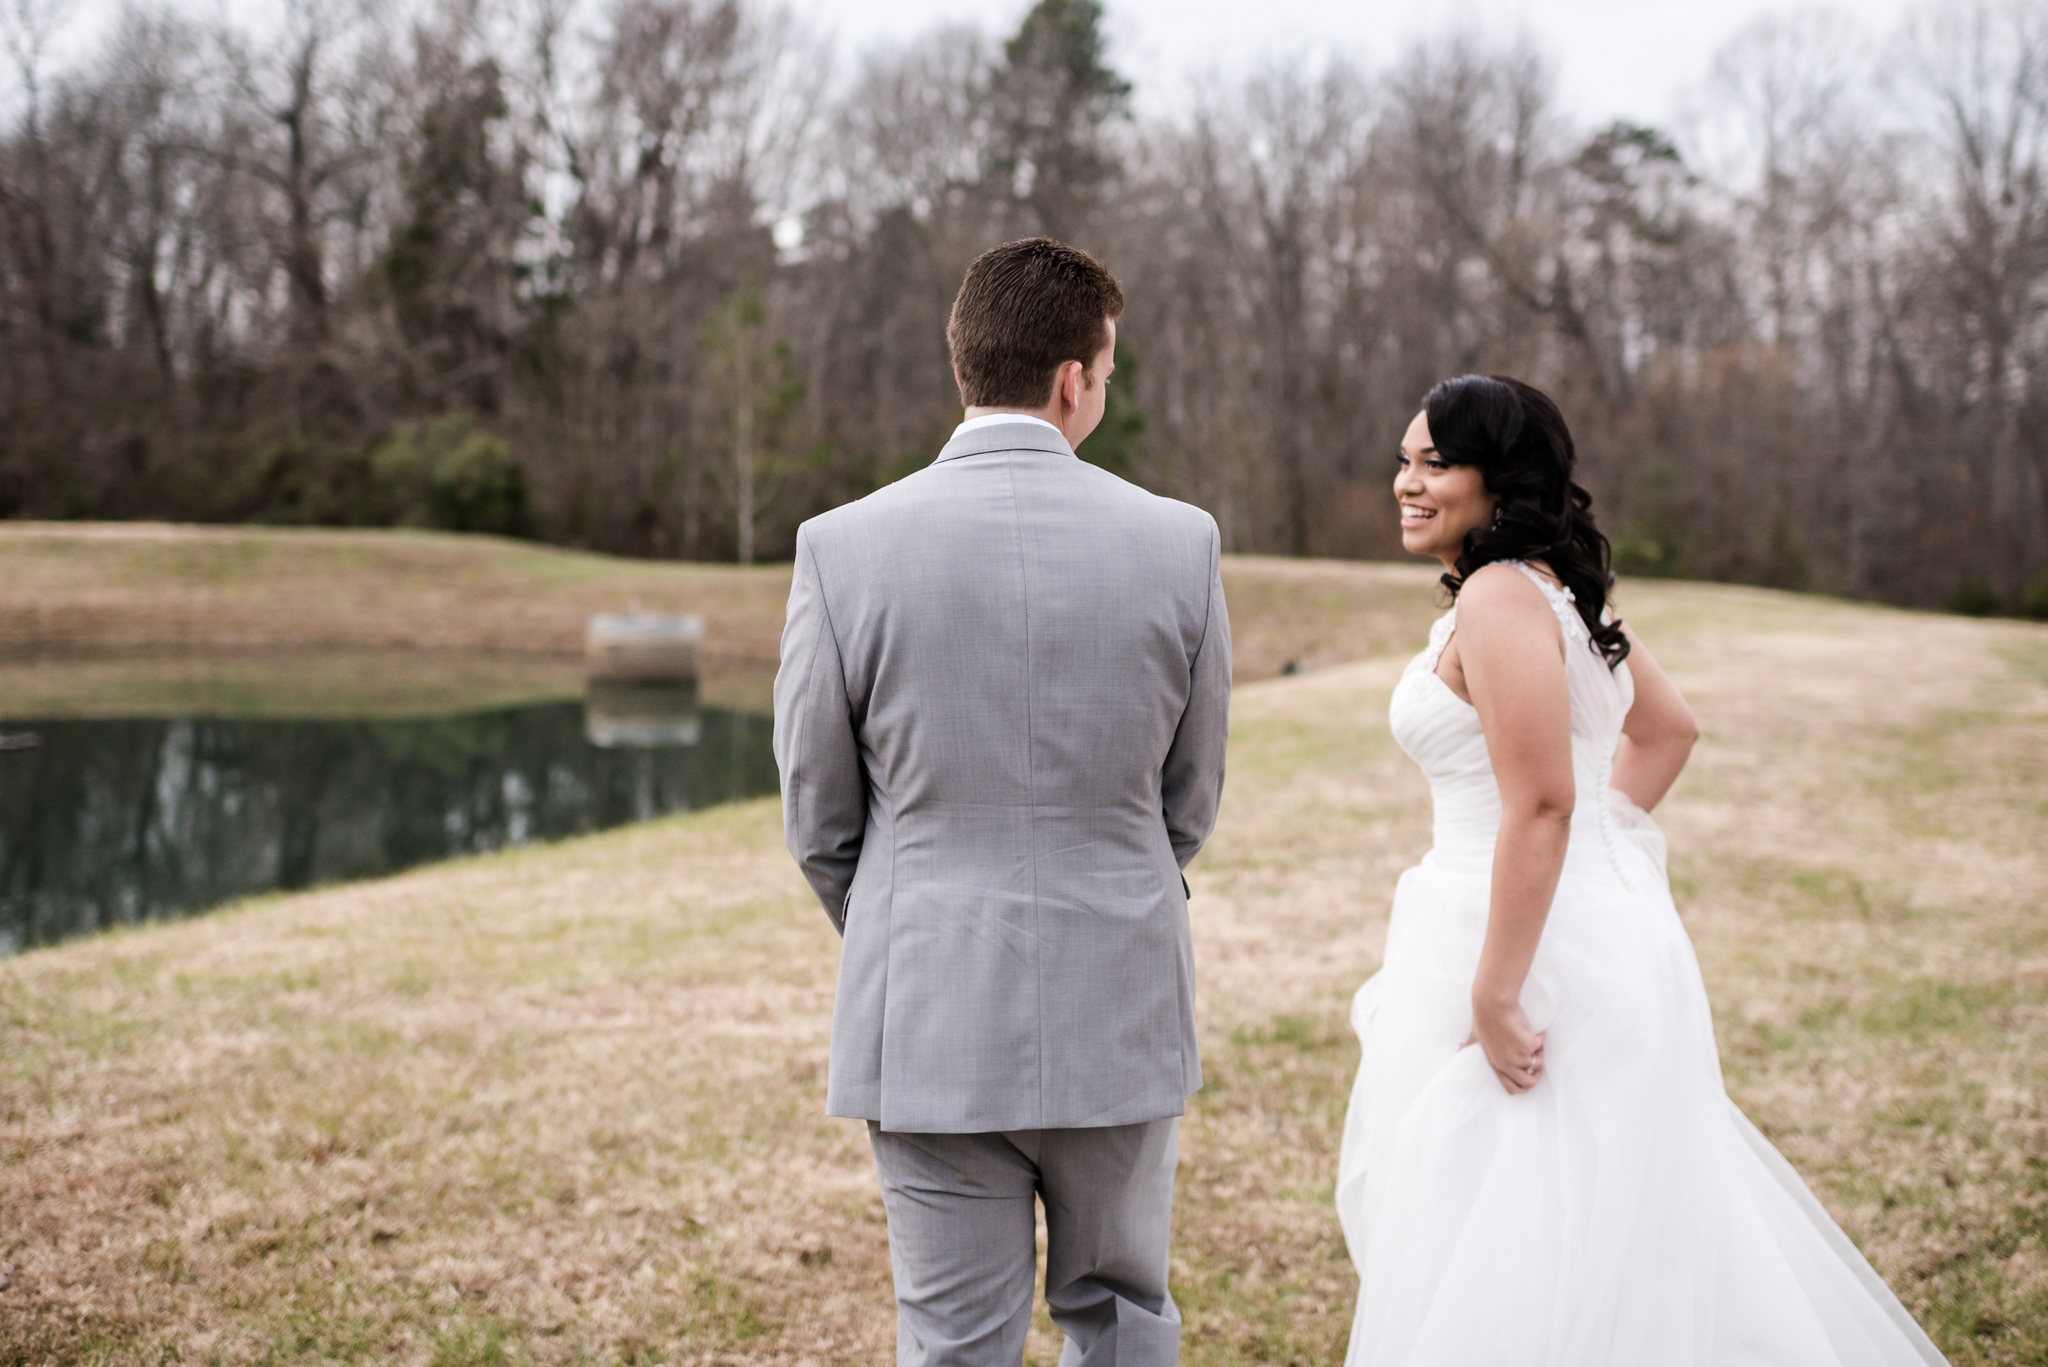 gibsonville-wedding-photography-005.jpg